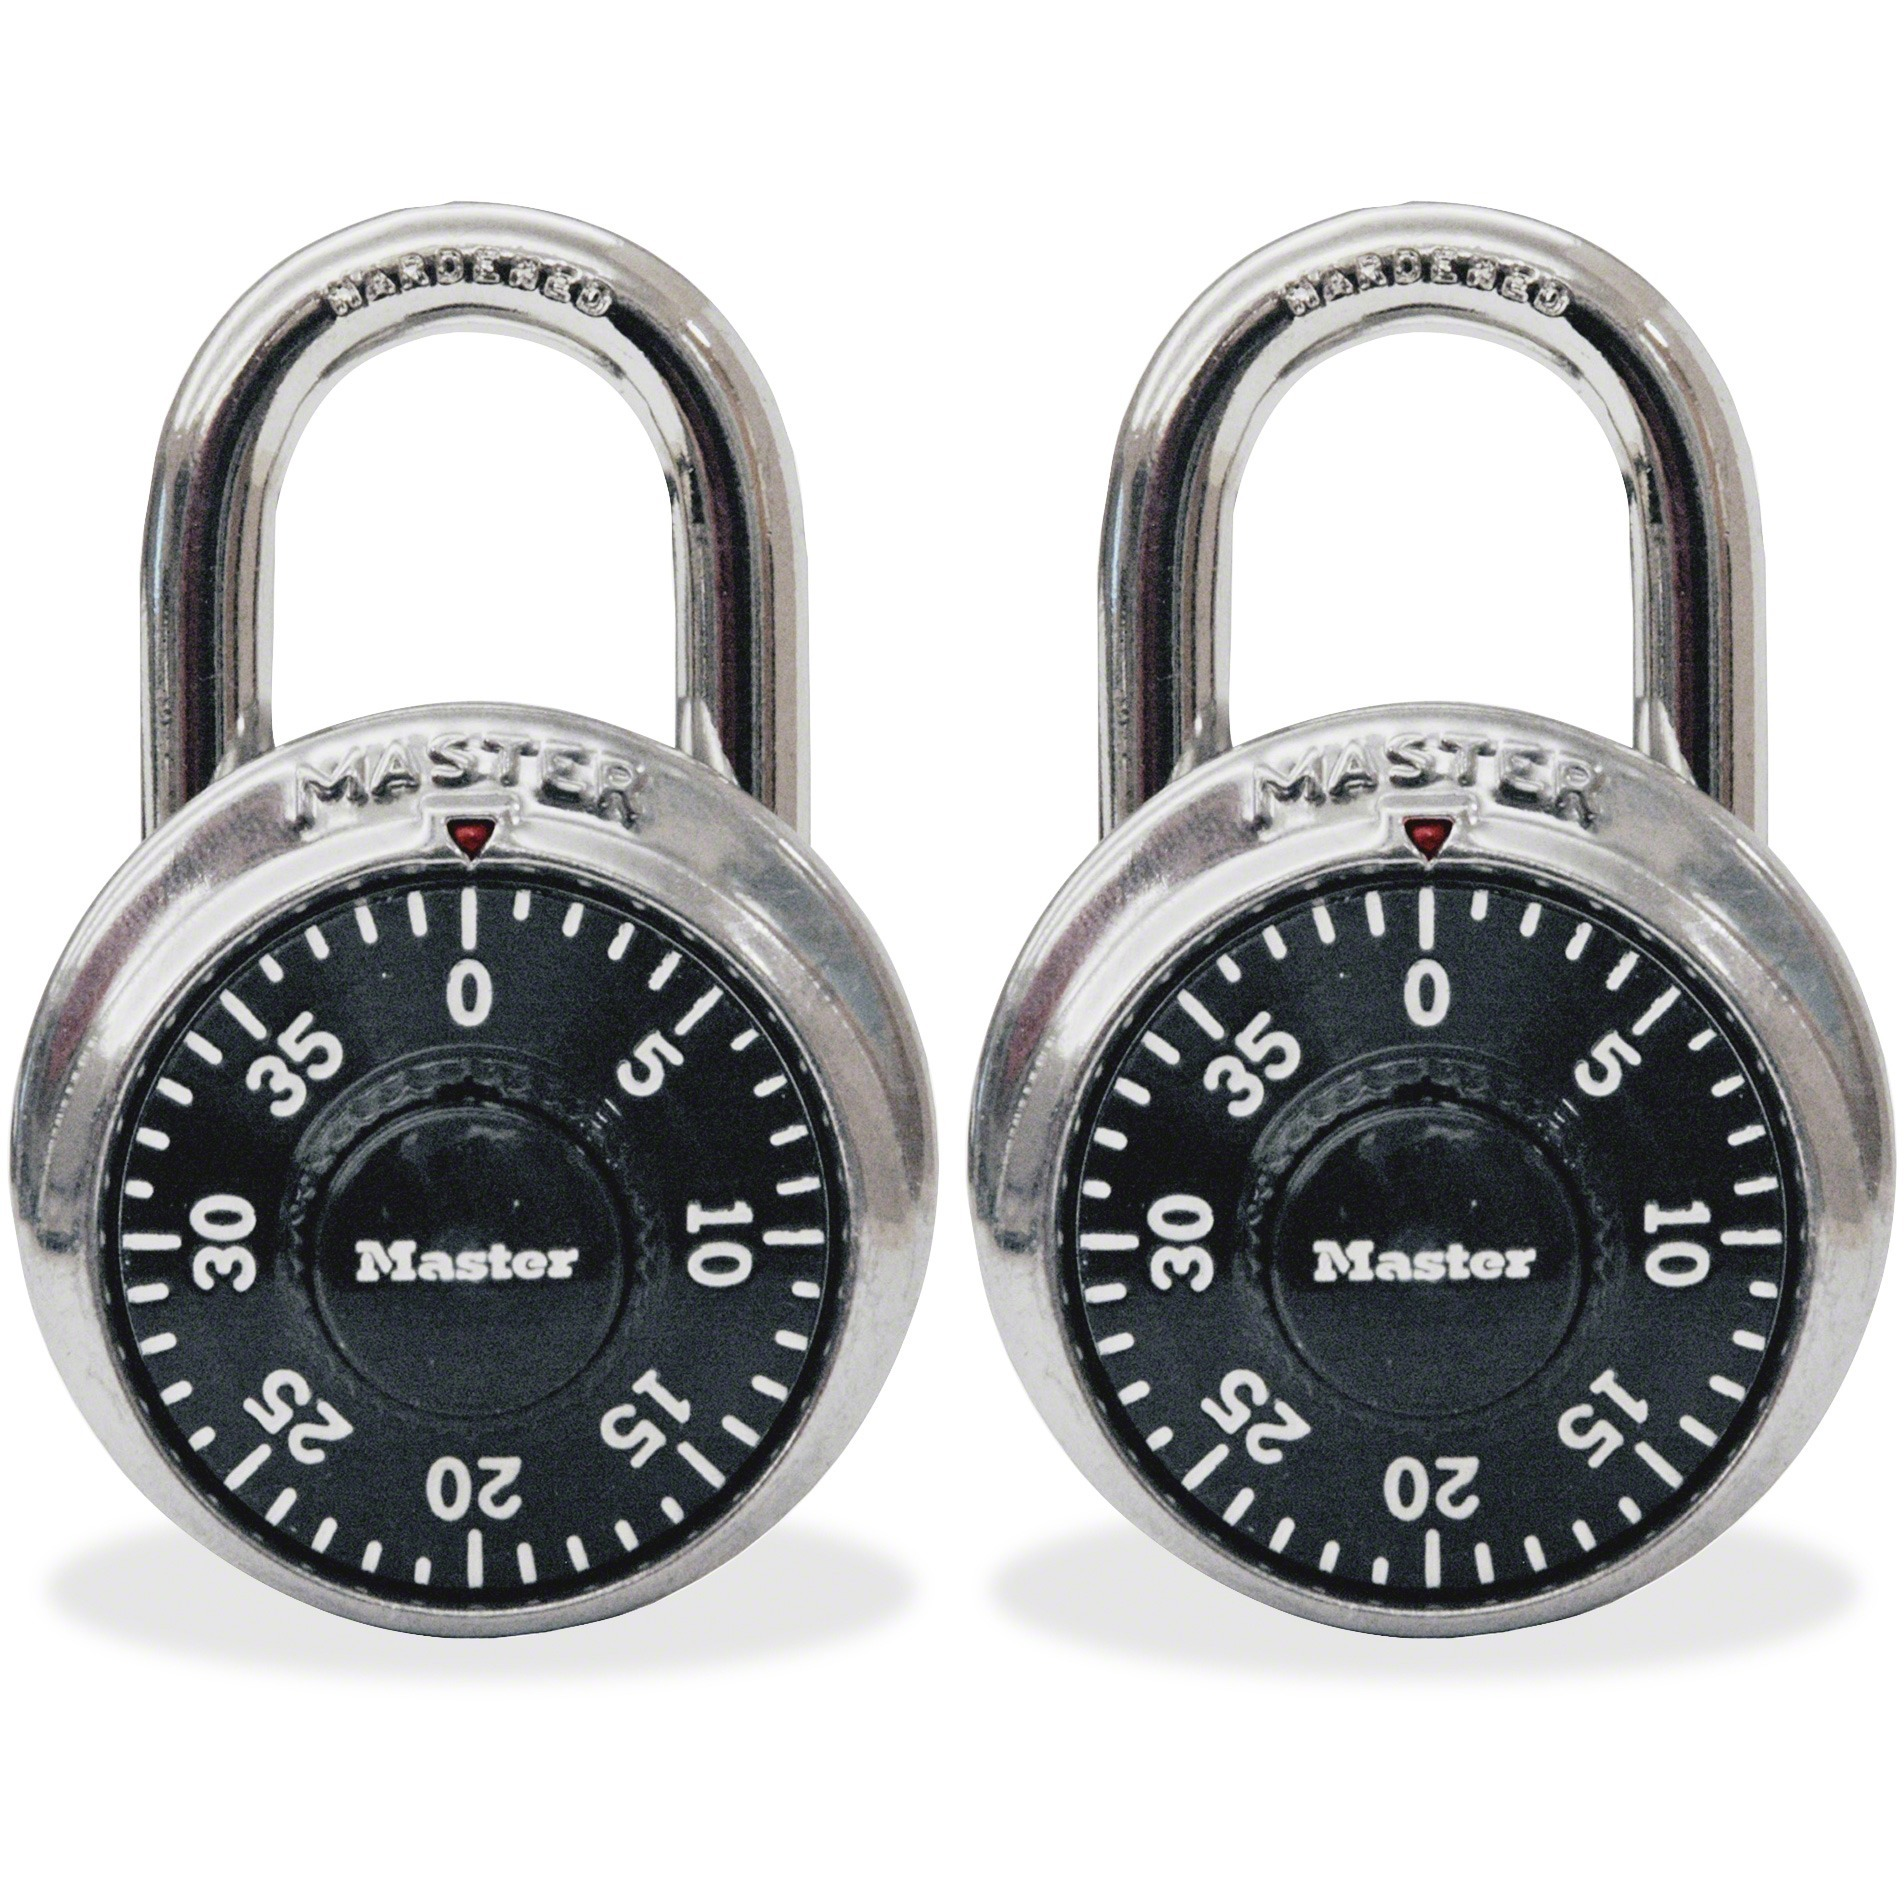 Master Lock, MLK1500T, Twin Combination Locks, 2 / Pack, Black